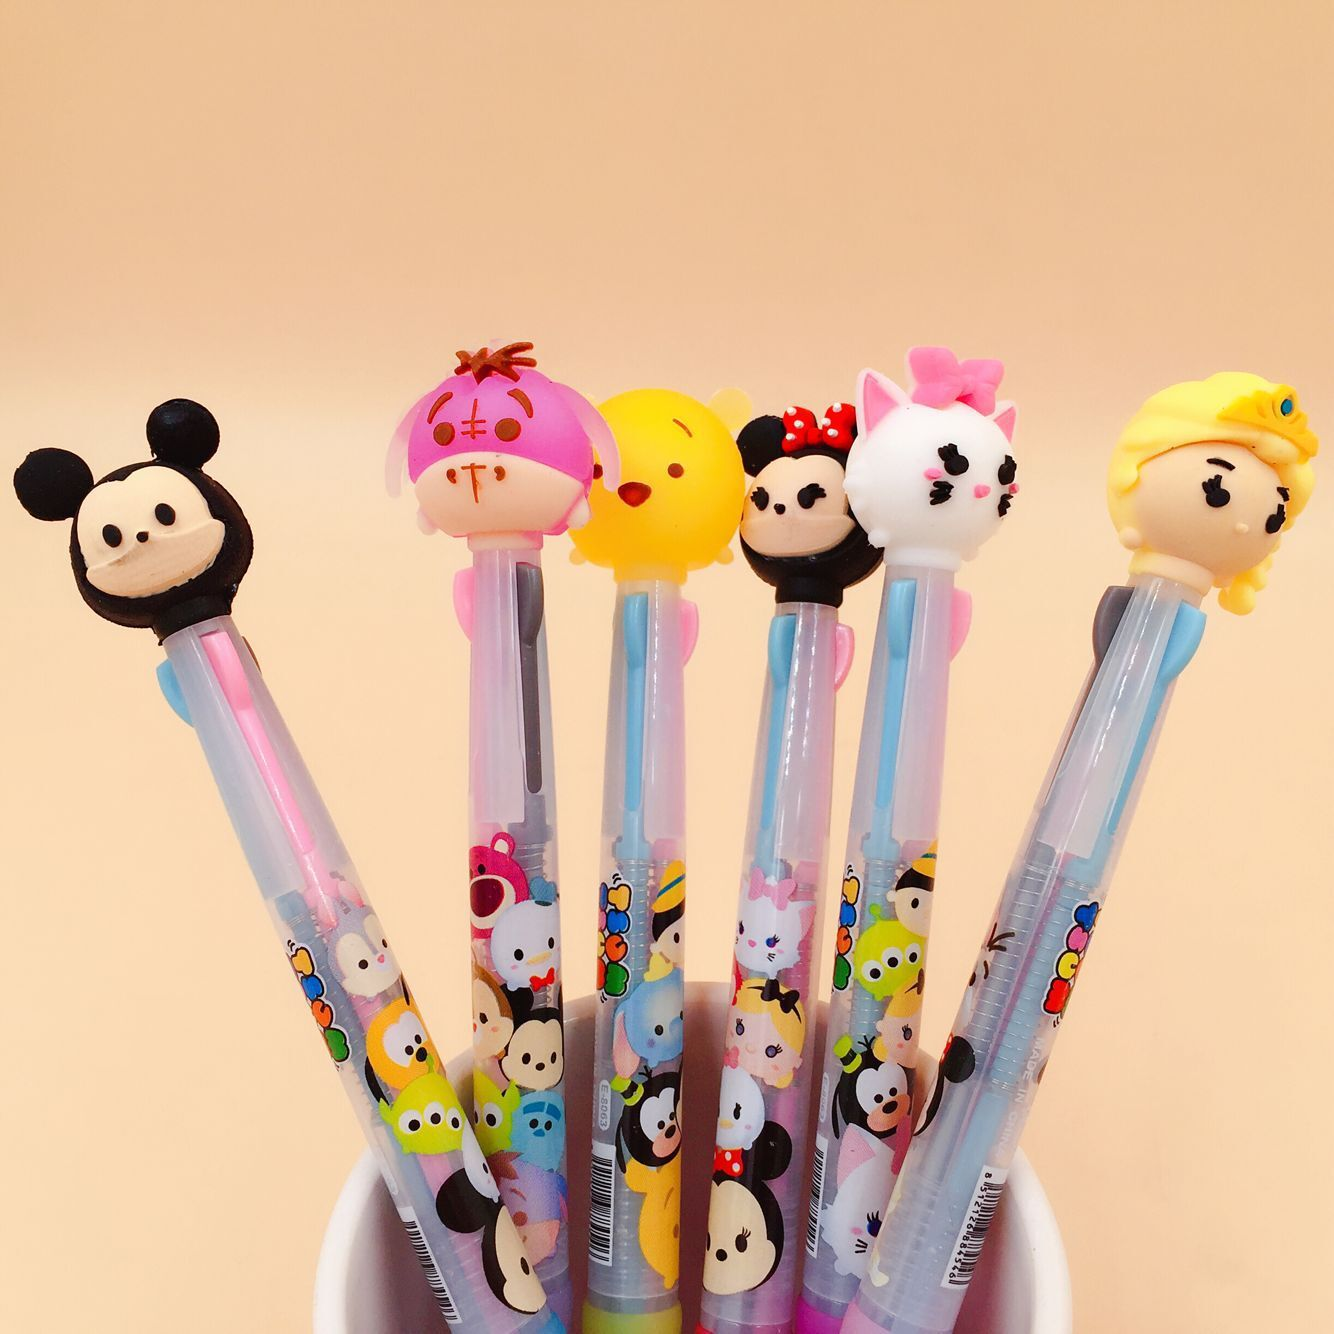 36 Pcs/lot Great School Family Cartoon 3 Colors Chunky Ballpoint Pen School Office Supply Gift Stationery Papelaria Escolar